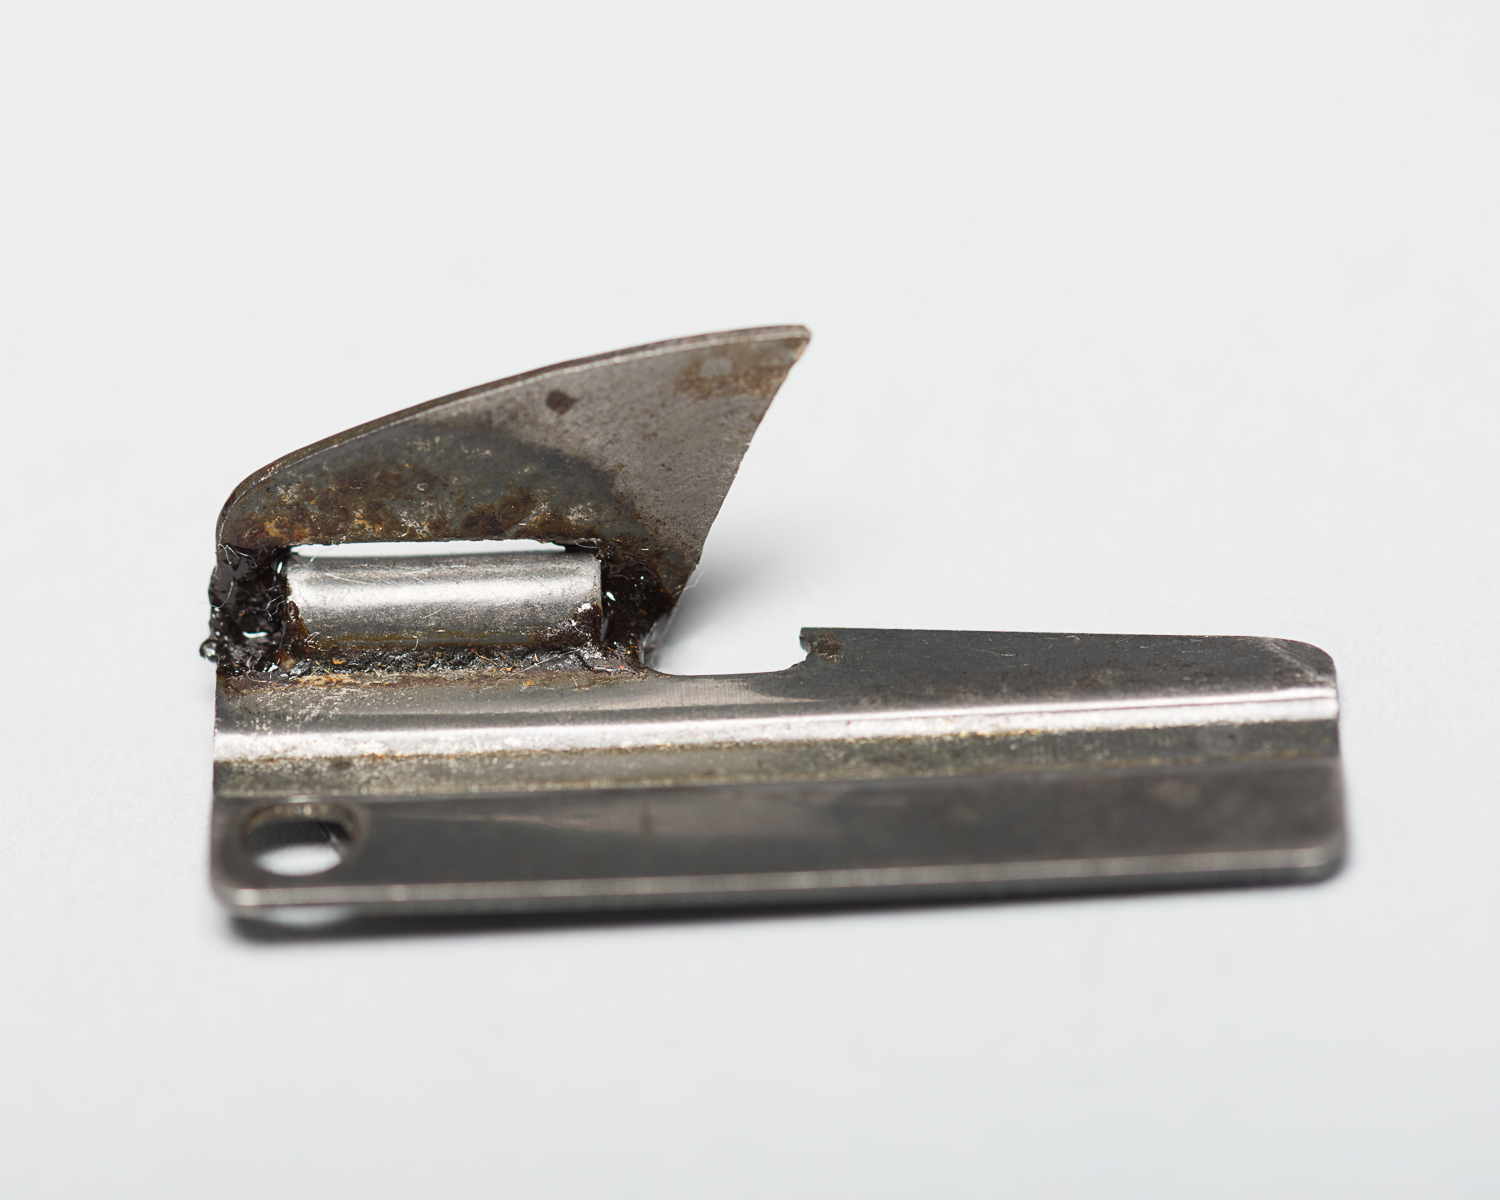 This can opener measures 4 cm long. An American soldier gave it to Dana Borenstein in the Stuttgart displaced persons' camp in Germany. (Photo: Peter Berra)